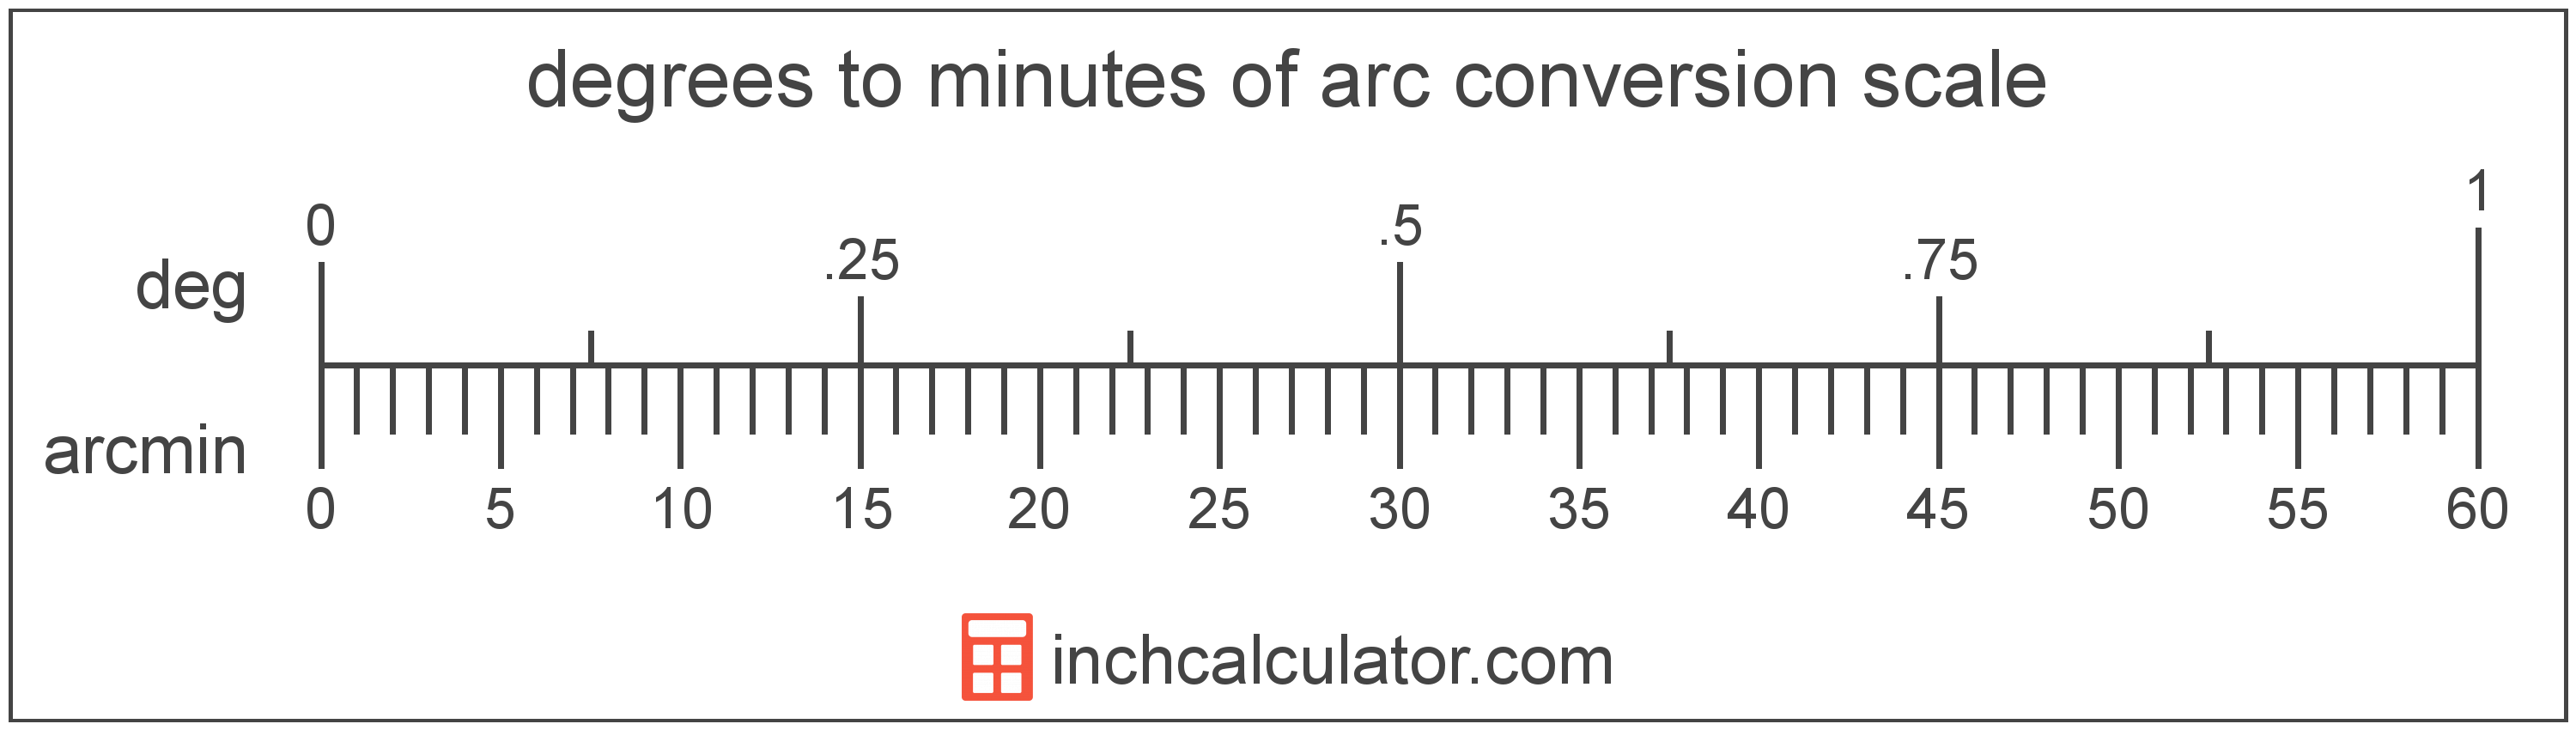 conversion scale showing minutes of arc and equivalent degrees angle values